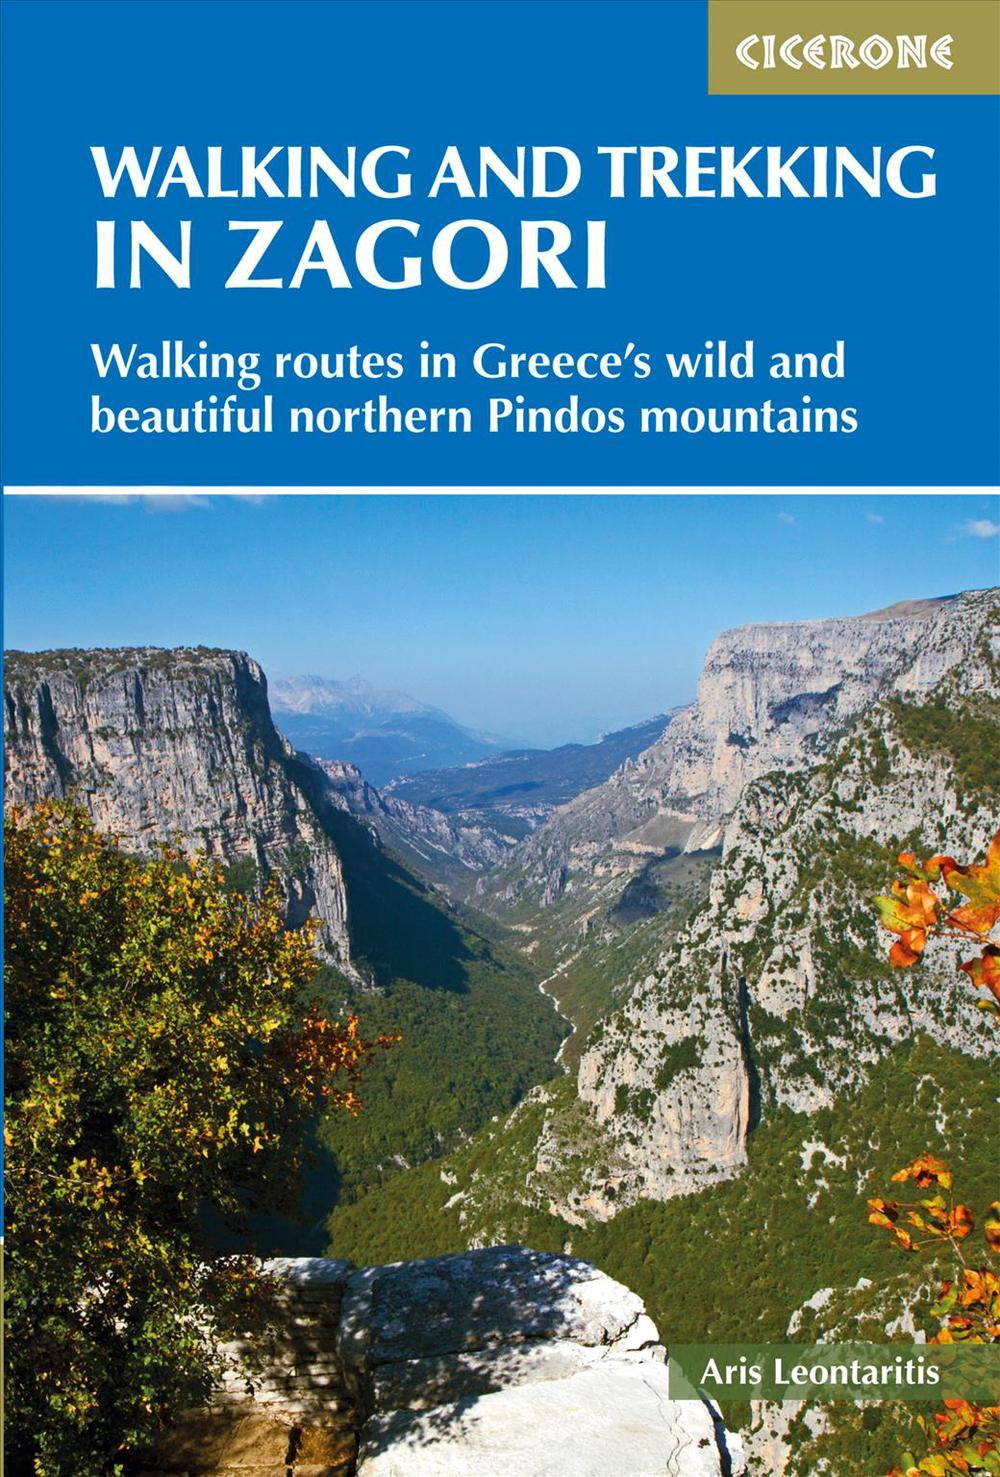 Walking and Trekking in Zagori: Walking routes in Greece's wild and beautiful northern Pindos mountains by Aris Leontaritis, ISBN: 9781852849412